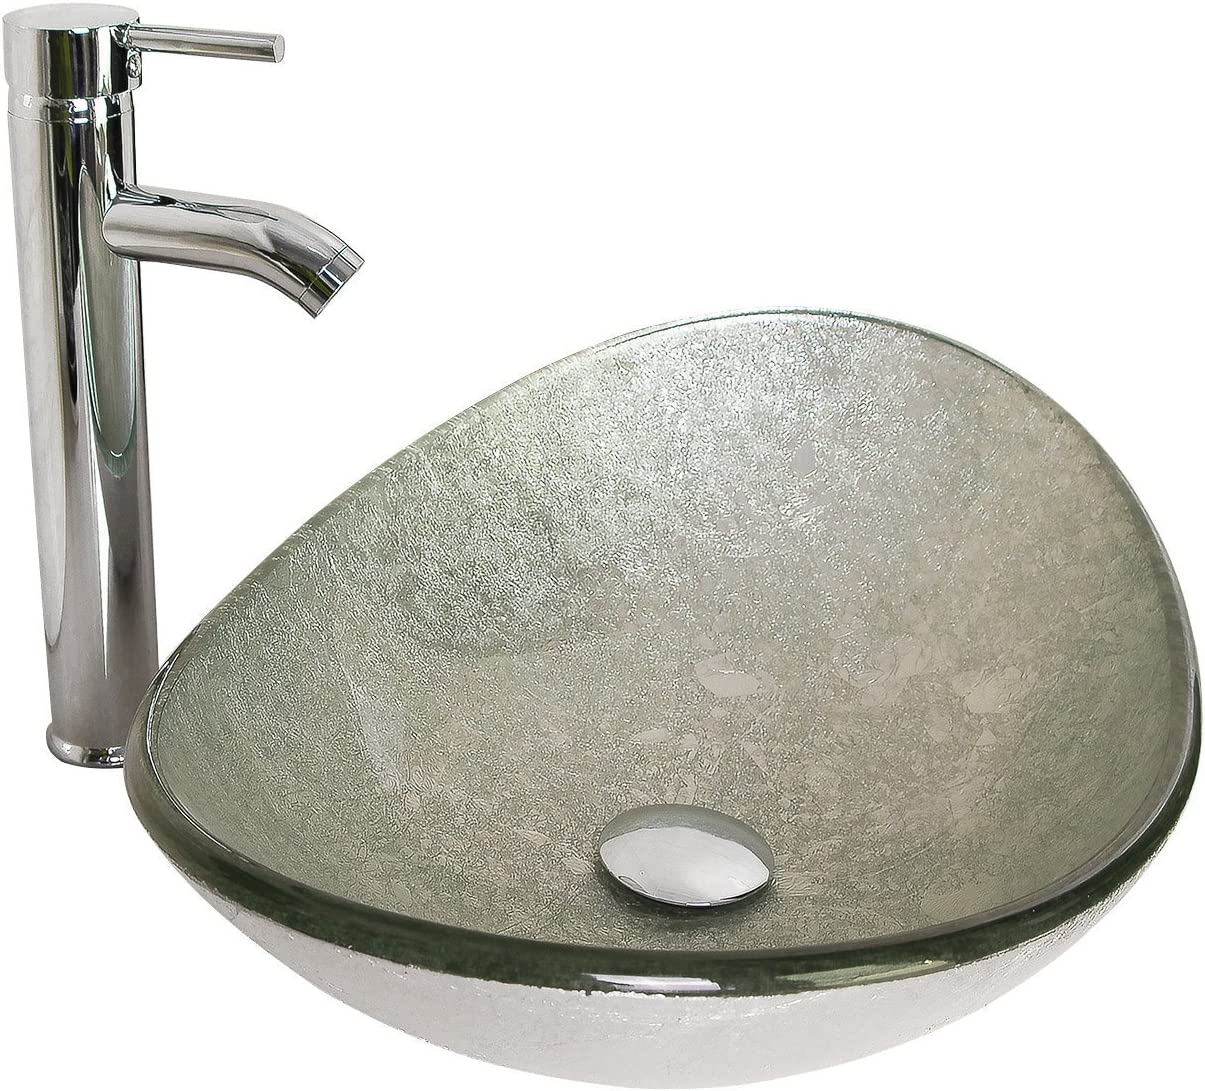 BATHJOY Modern Bathroom Oval Glass Vessel Sink Bowl with Chrome Faucet and Pop-up Drain Combo